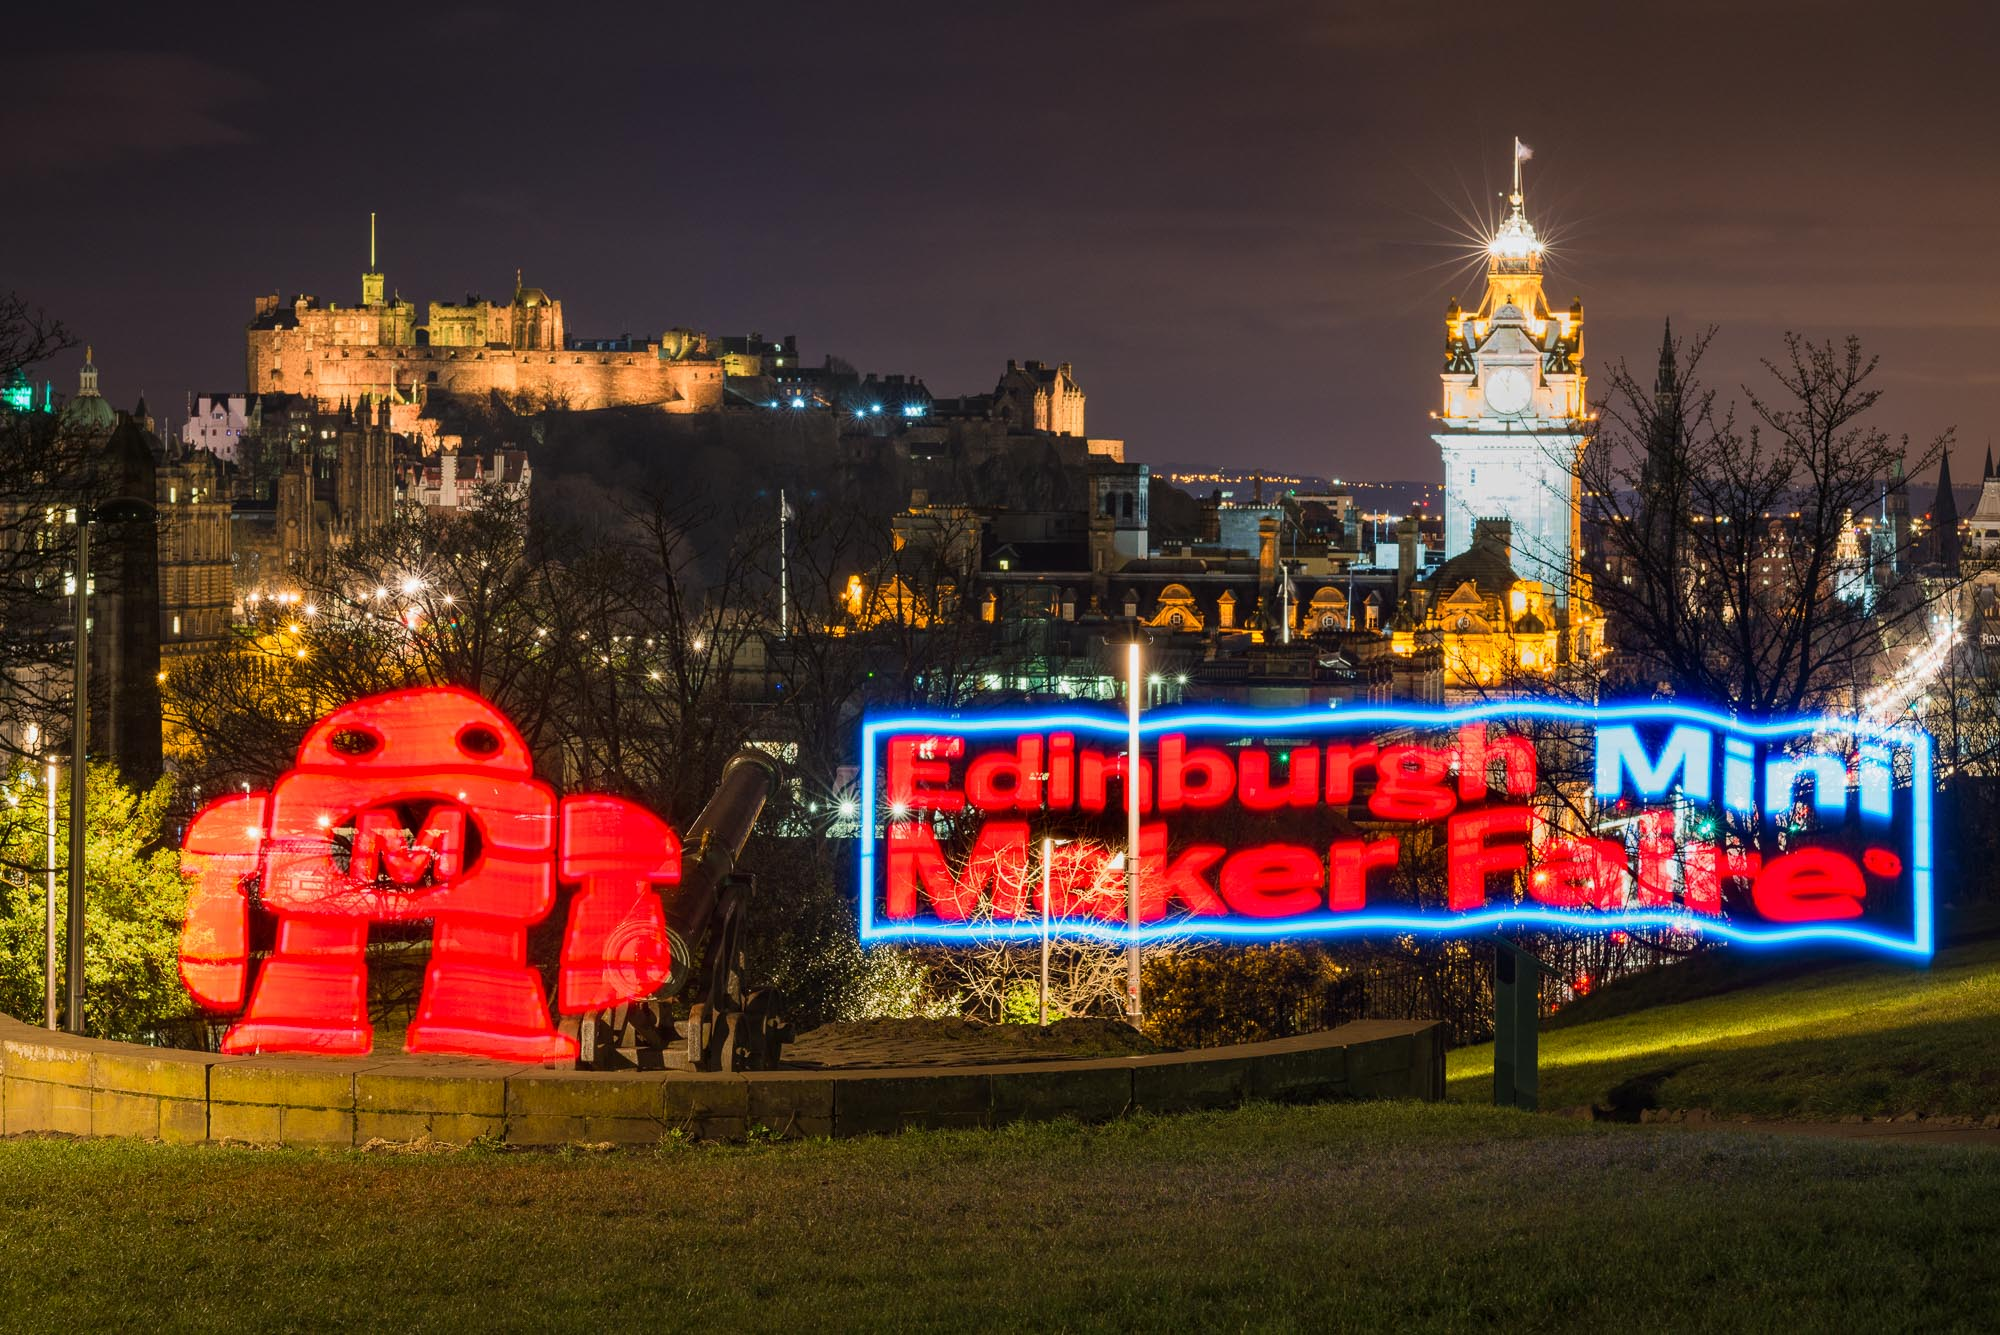 Light painting for Edinburgh Science Festival - Mini Maker Faire by Devicer and Iain Robinson